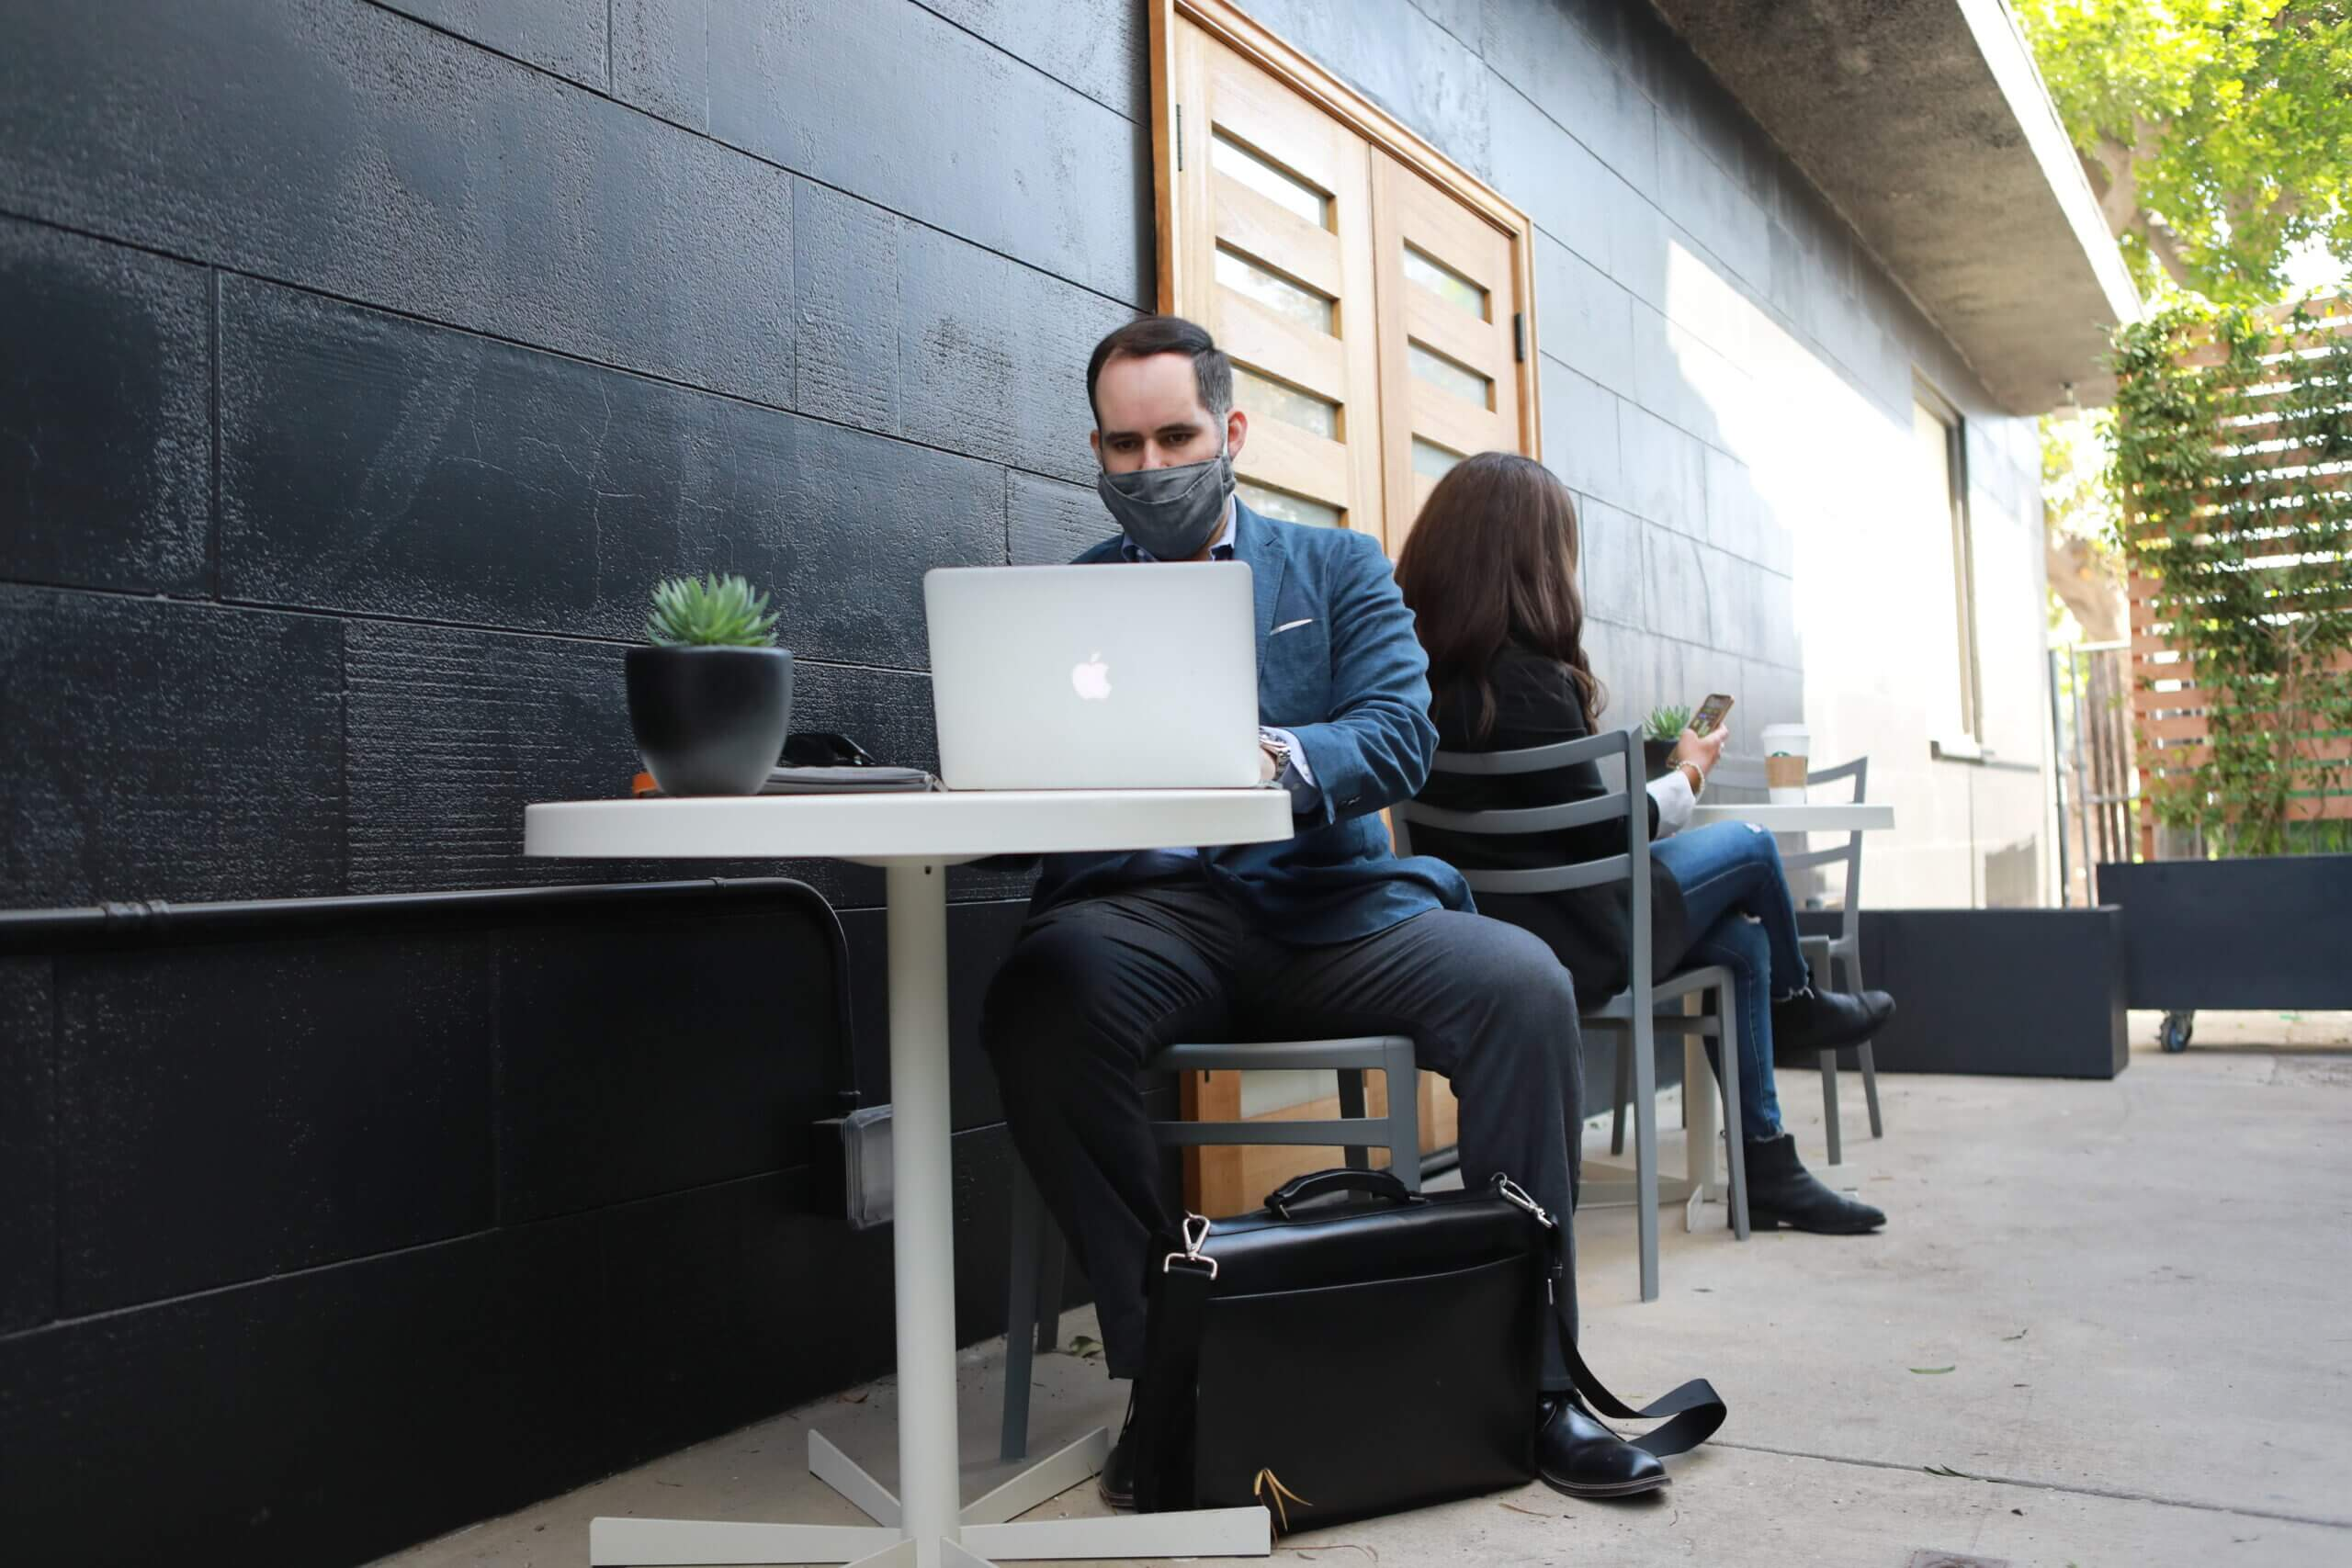 Justice HQ member working outside